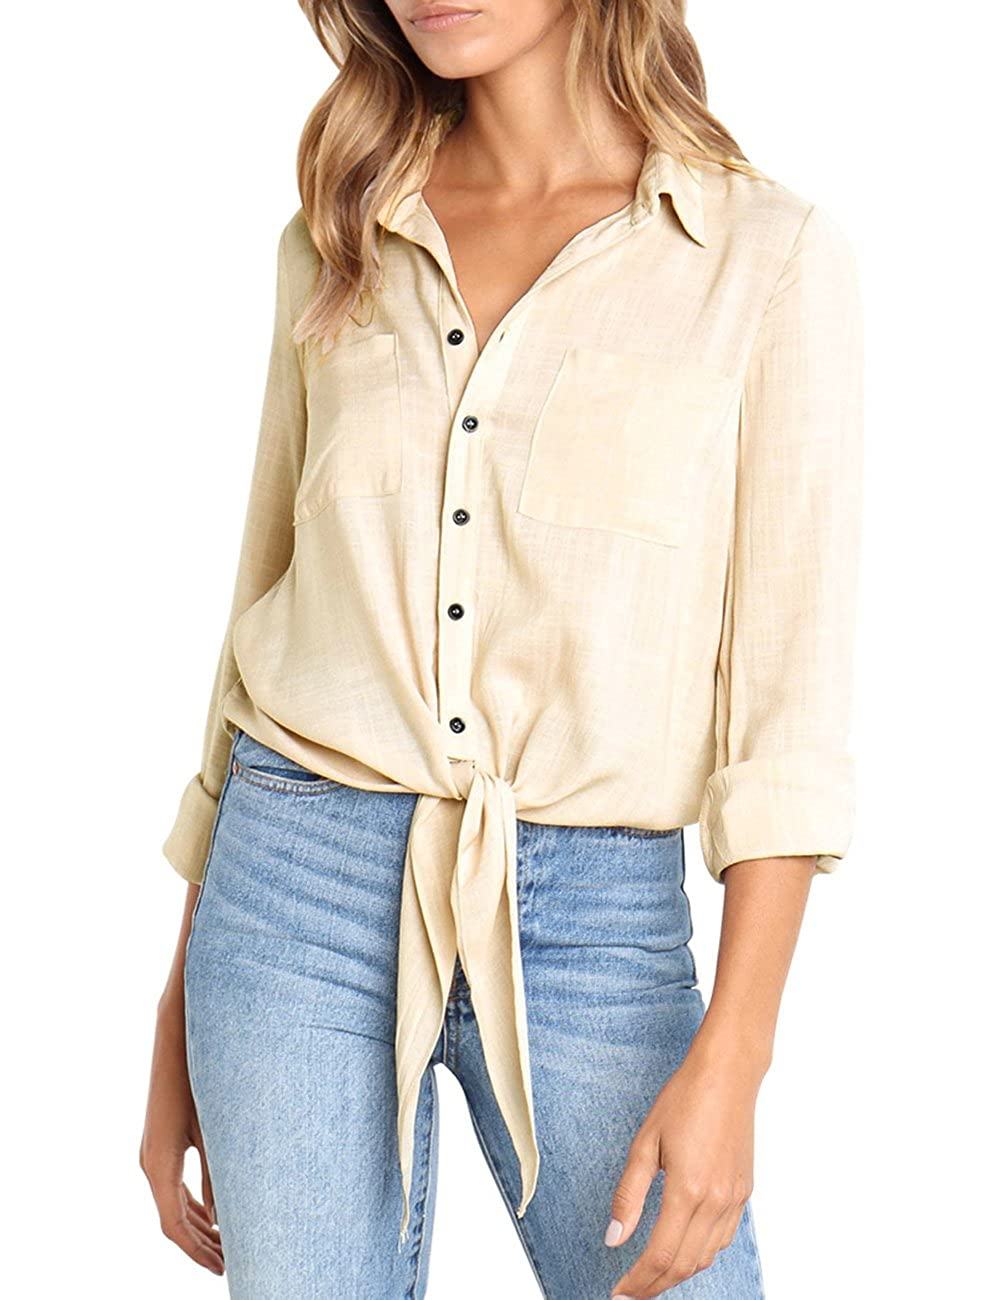 b7234dfd Women\'s 3/4 Sleeve Solid Tie Front Pockets Button Down Shirts Blouse Tops  Casual collared blouse features 3 quarter rolled up cuffed sleeves